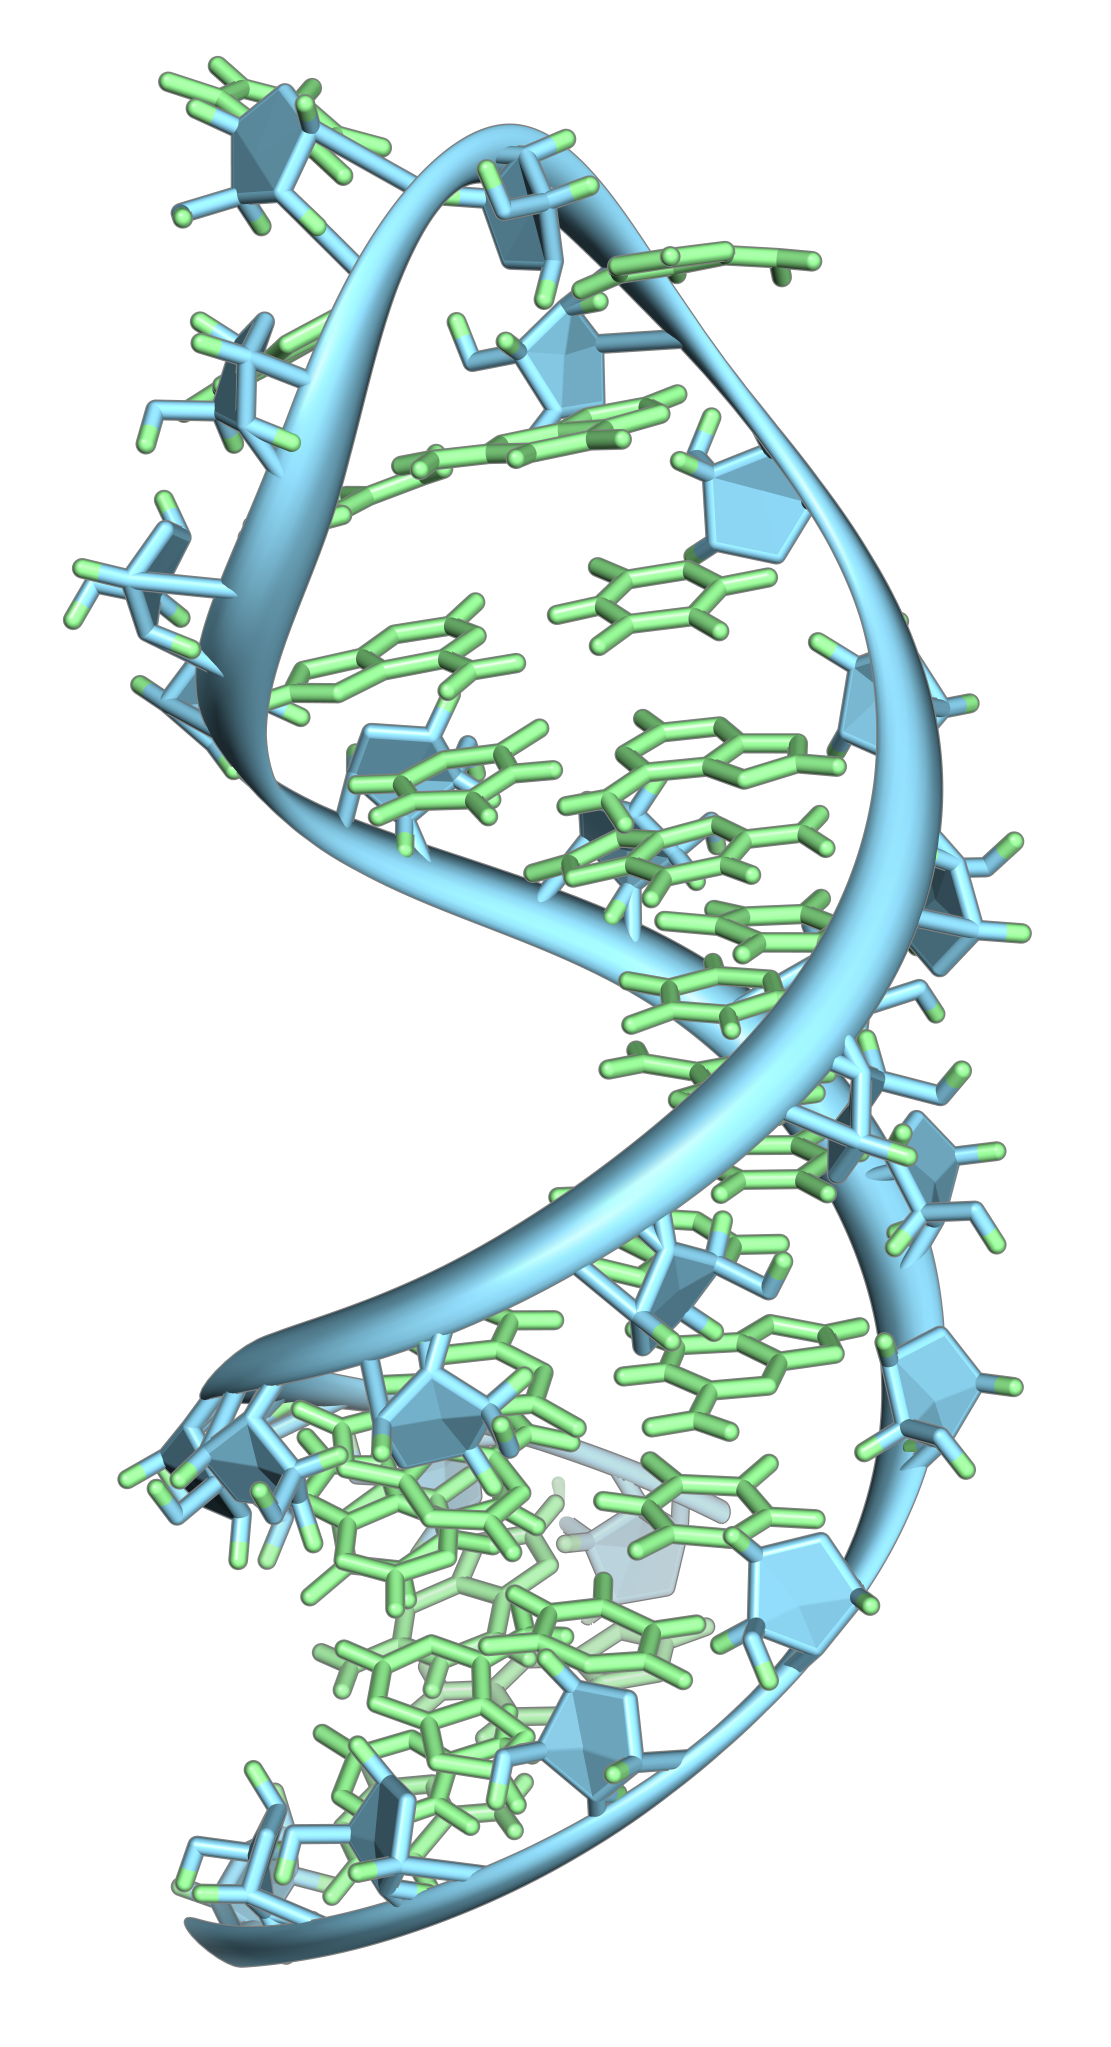 A hairpin loop from a pre-mRNA. Highlighted are the nucleobases (green) and the ribose-phosphate backbone (blue). Note that this is a single strand of RNA that folds back upon itself